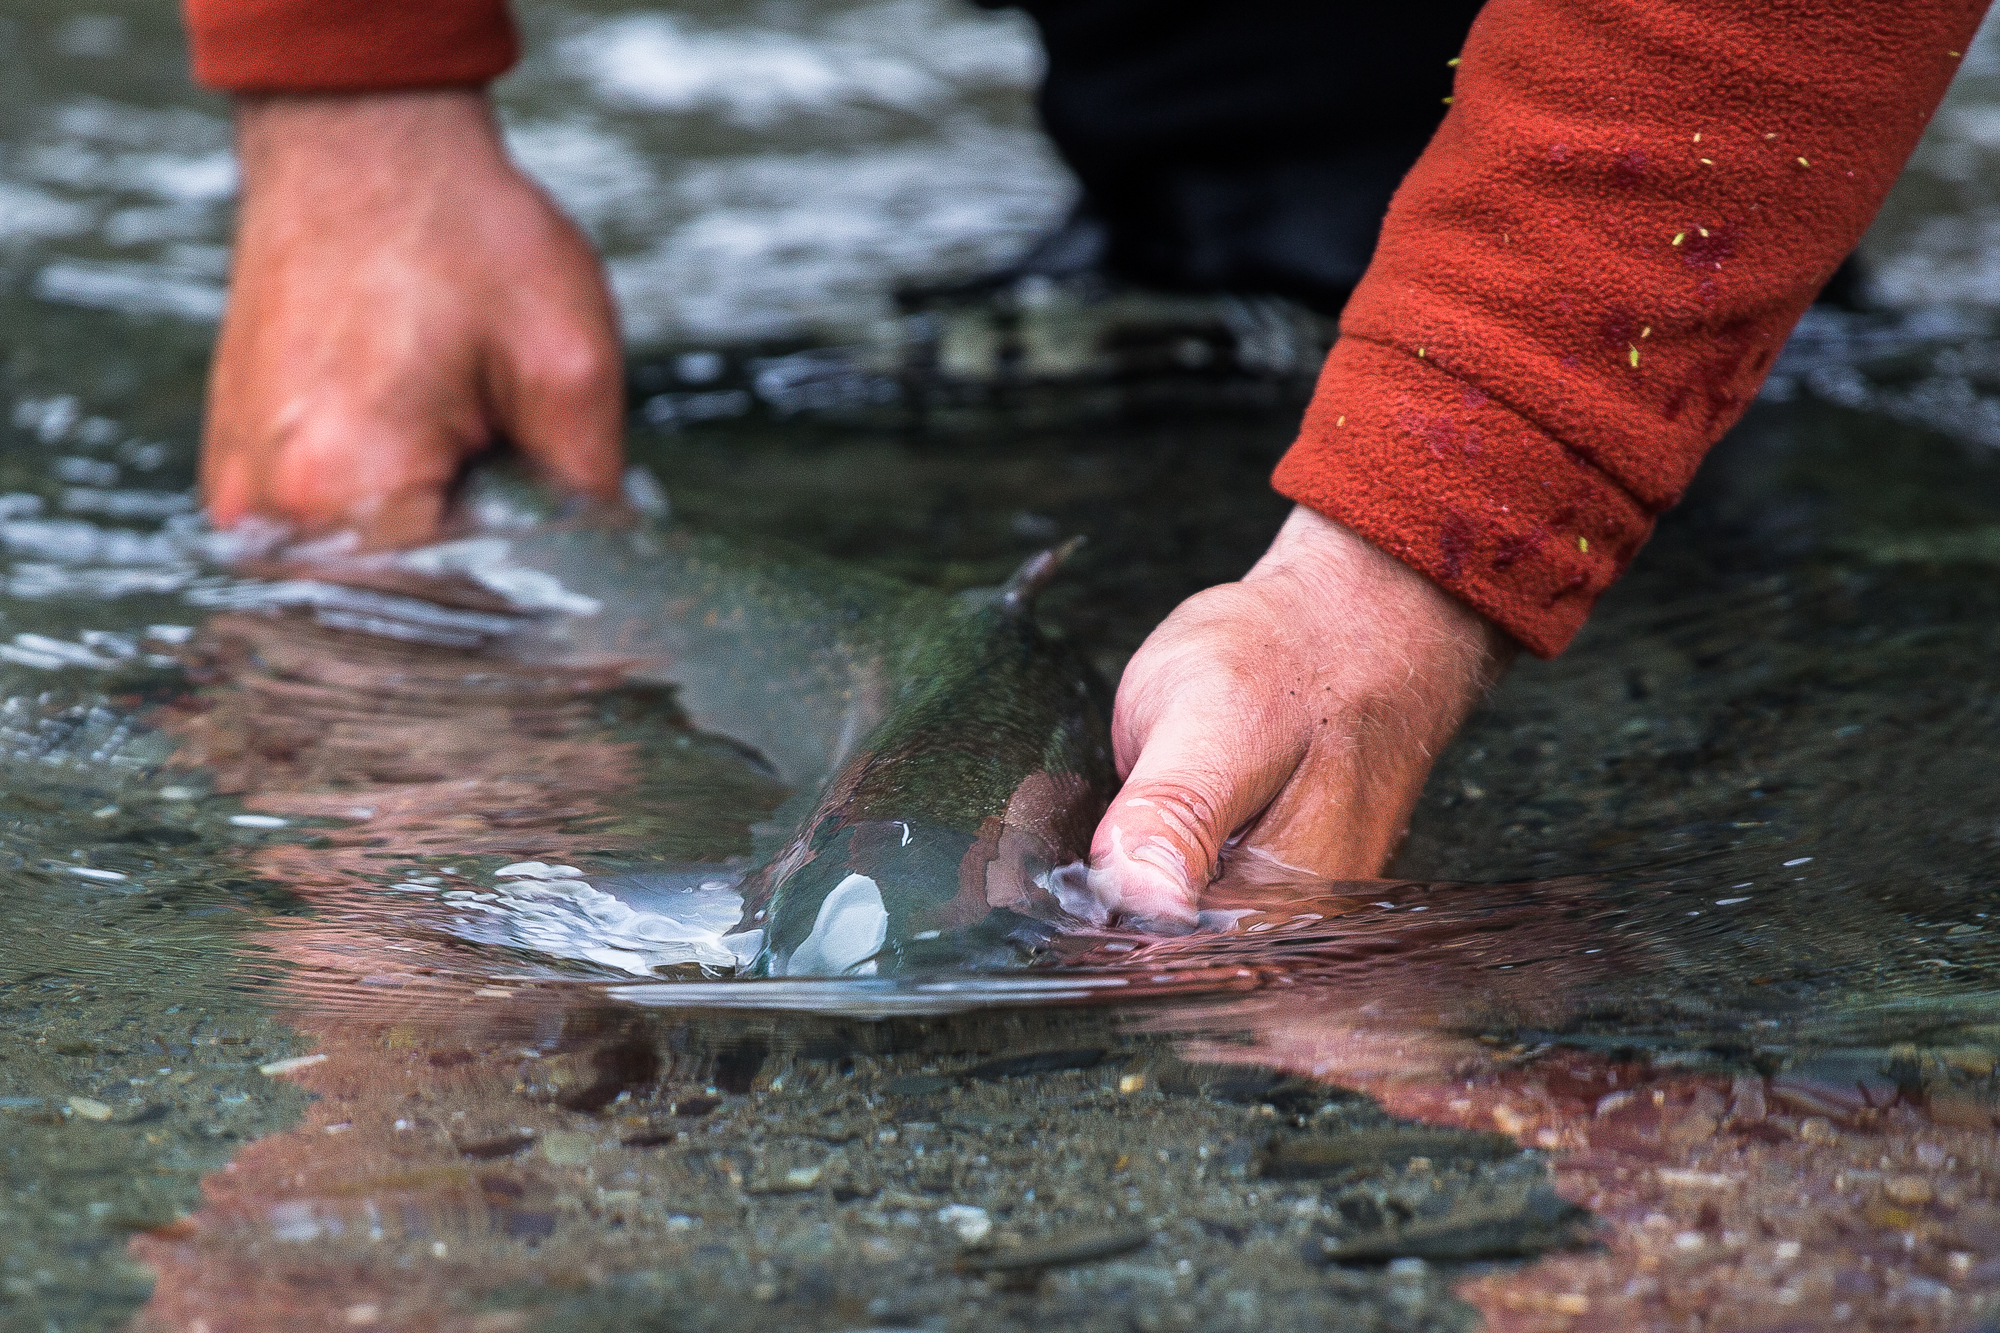 (3/3) The chum and dolly varden in this creek are impressive specimens. Many of the dolly varden, which gorge virtually non-stop all summer long on salmon eggs, will top 30 inches in length (photo: Chad Shmukler).